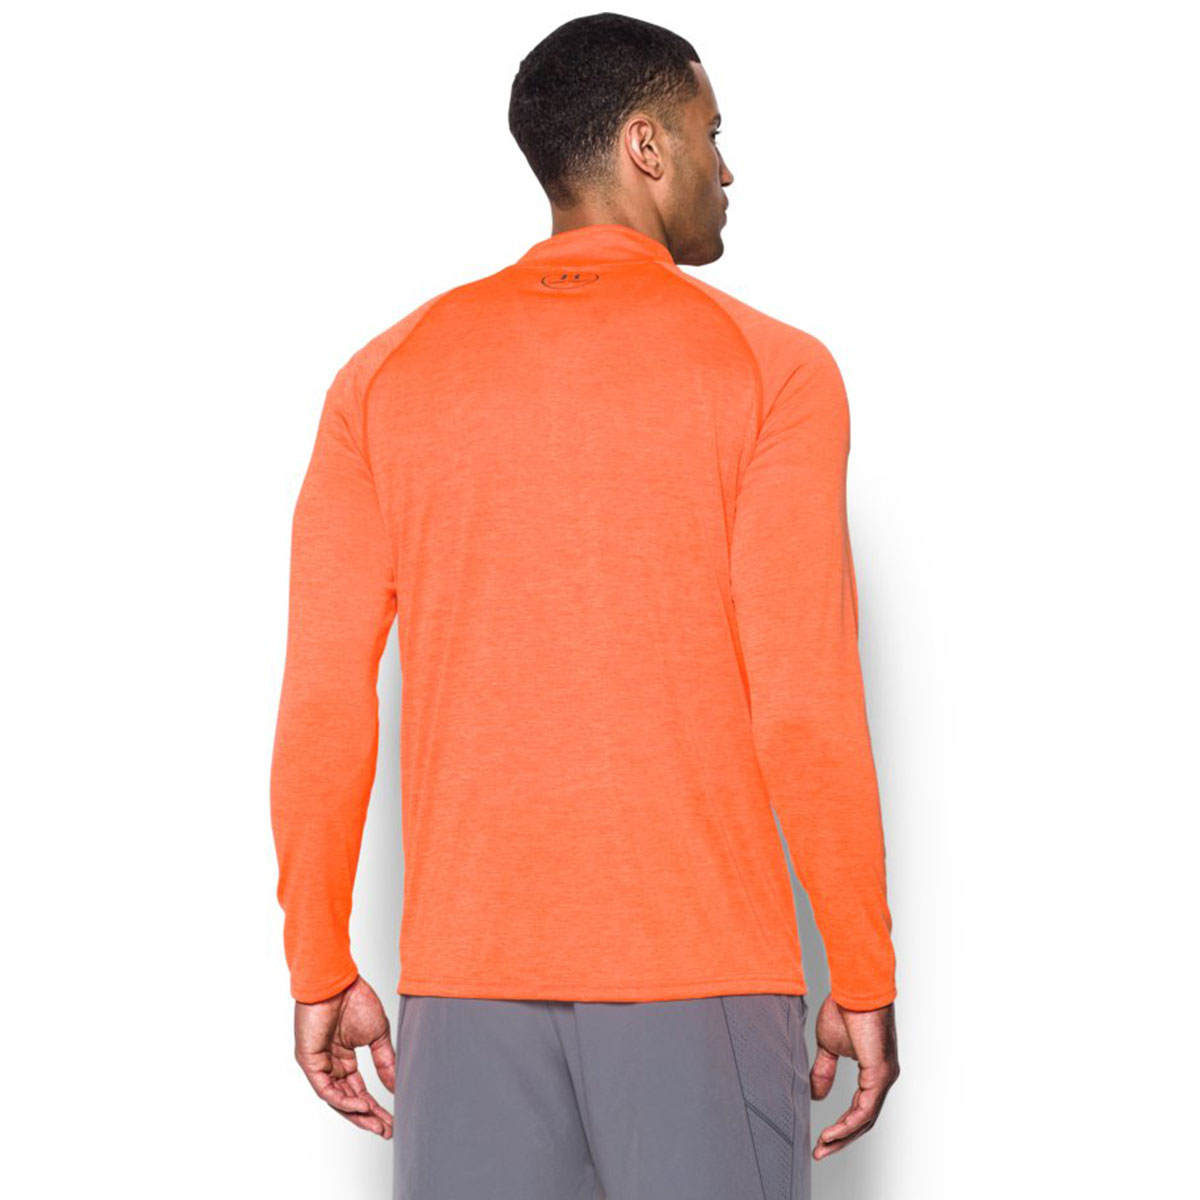 Under-Armour-Mens-UA-Tech-1-4-Zip-Long-Sleeve-Top-Workout-Layer-27-OFF-RRP thumbnail 55